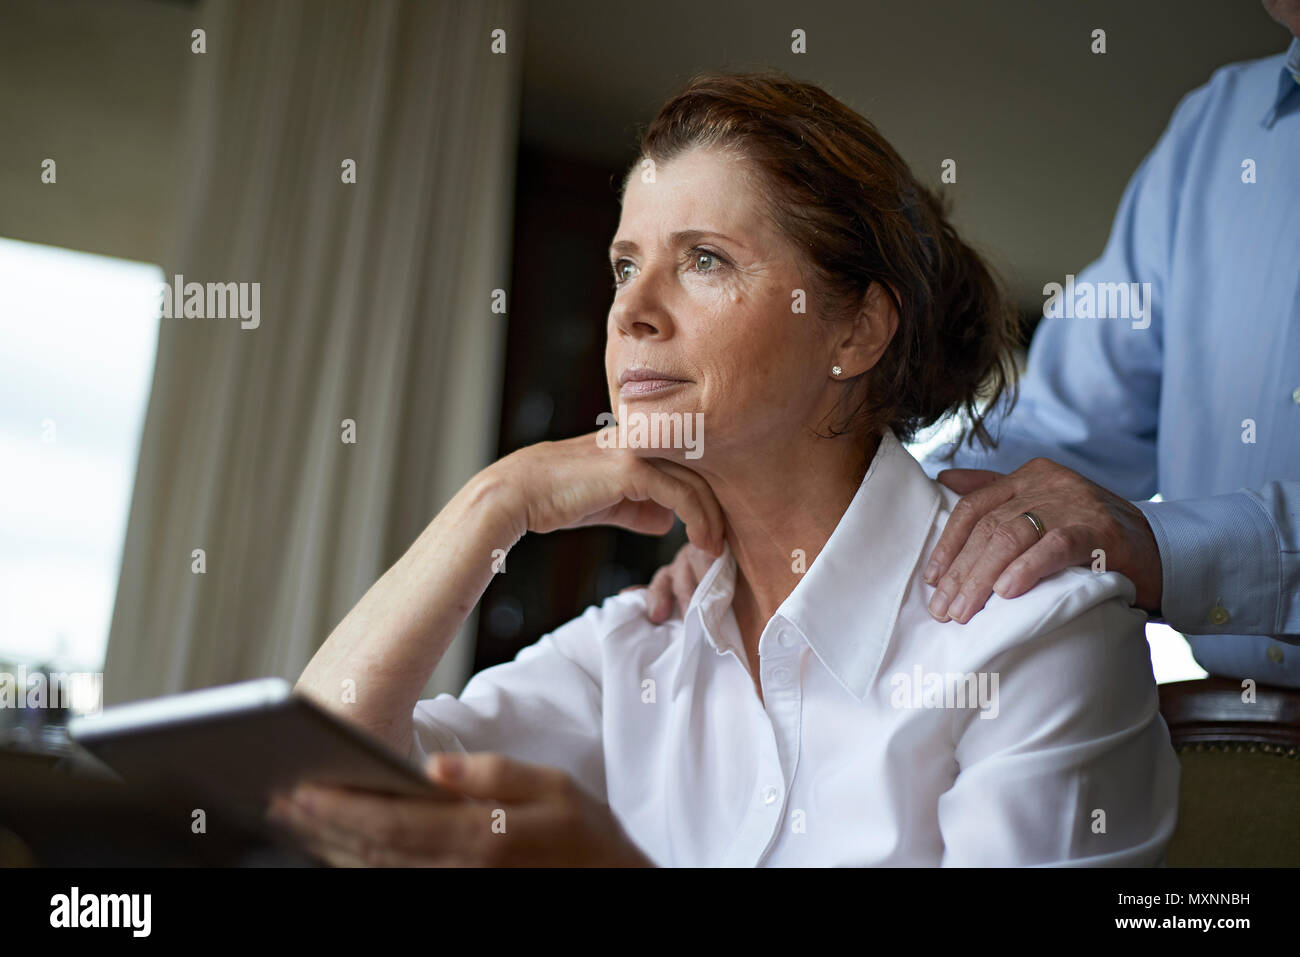 Edlery woman sitting at table at home with mobile device looking upset with her husband standing behind her to comfort her - Stock Image